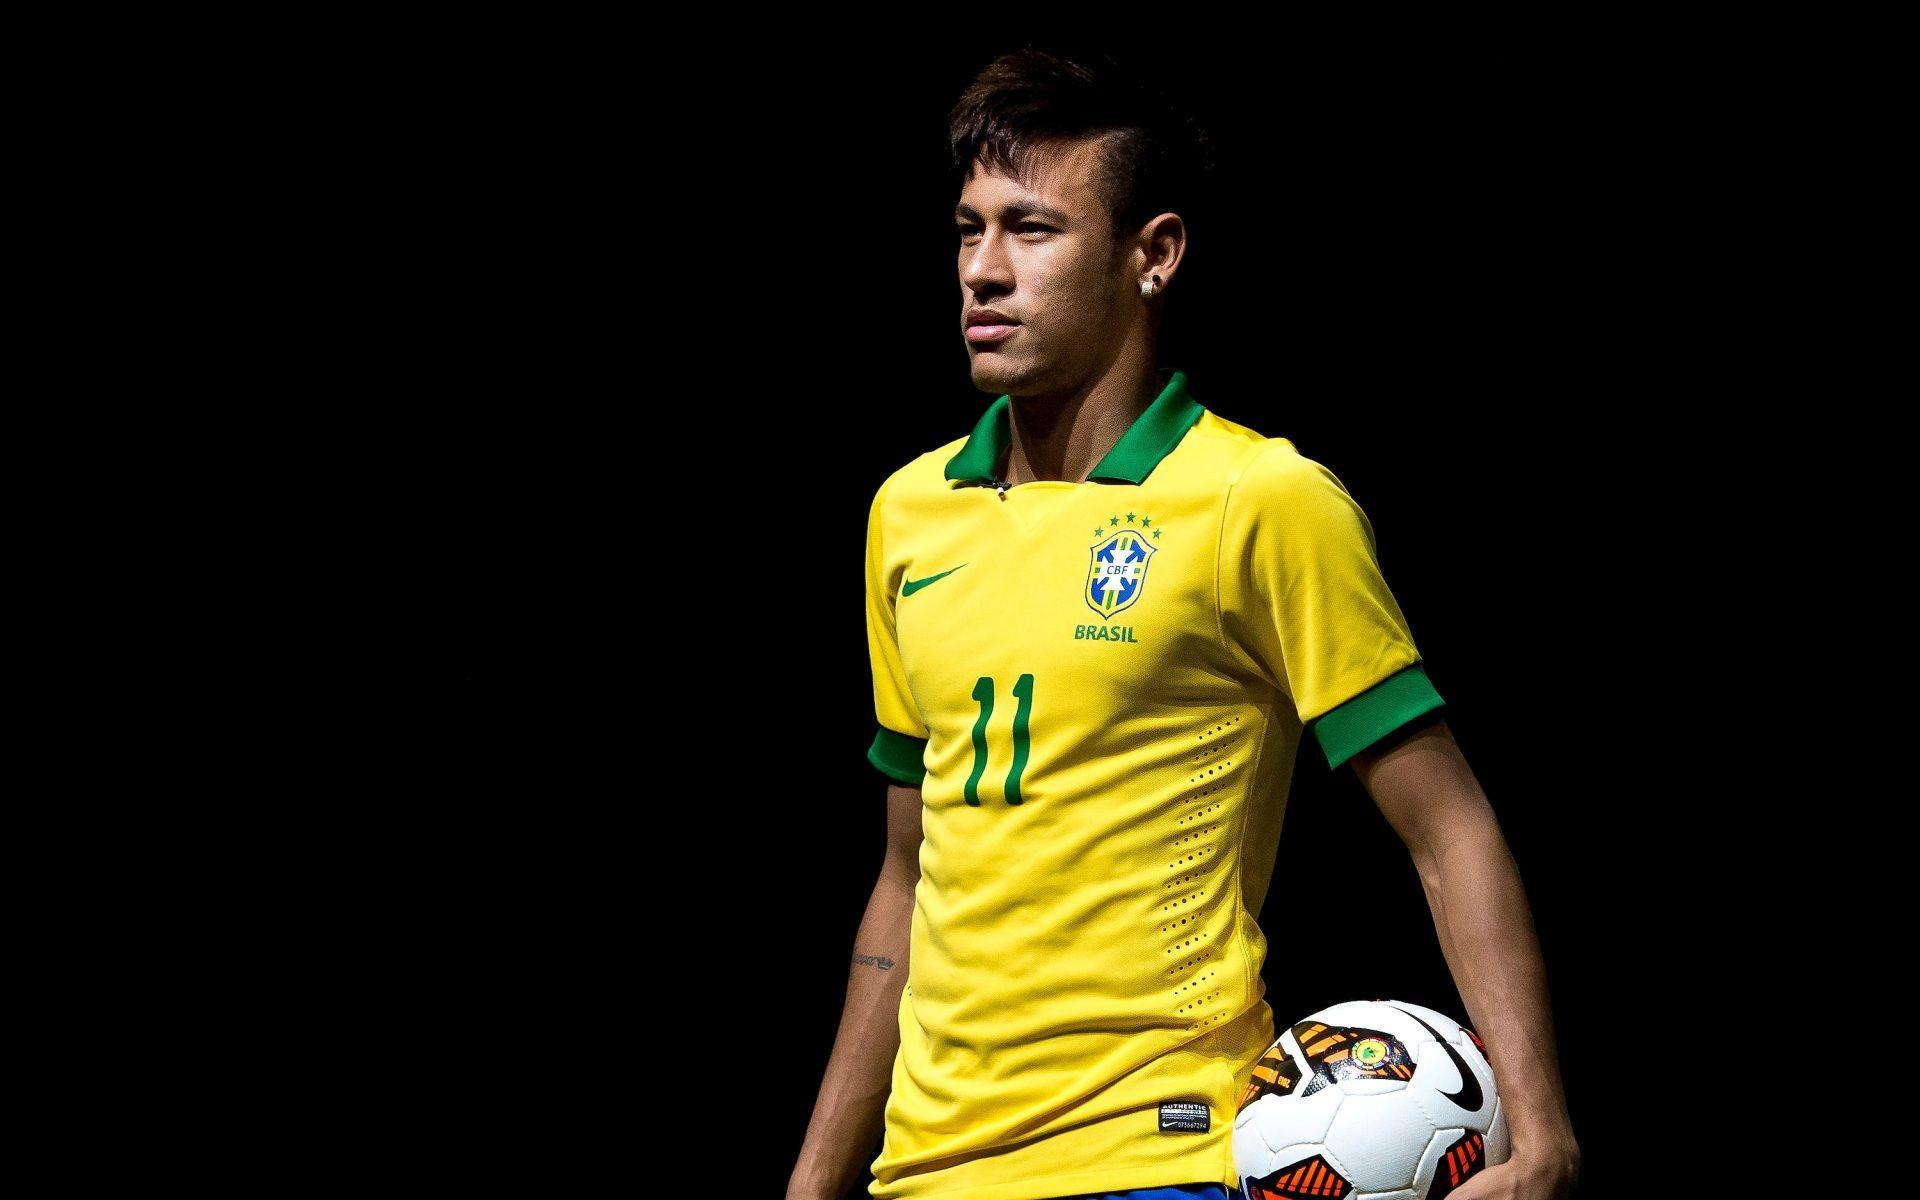 Neymar Brazil World Cup 2014 HD Wallpapers